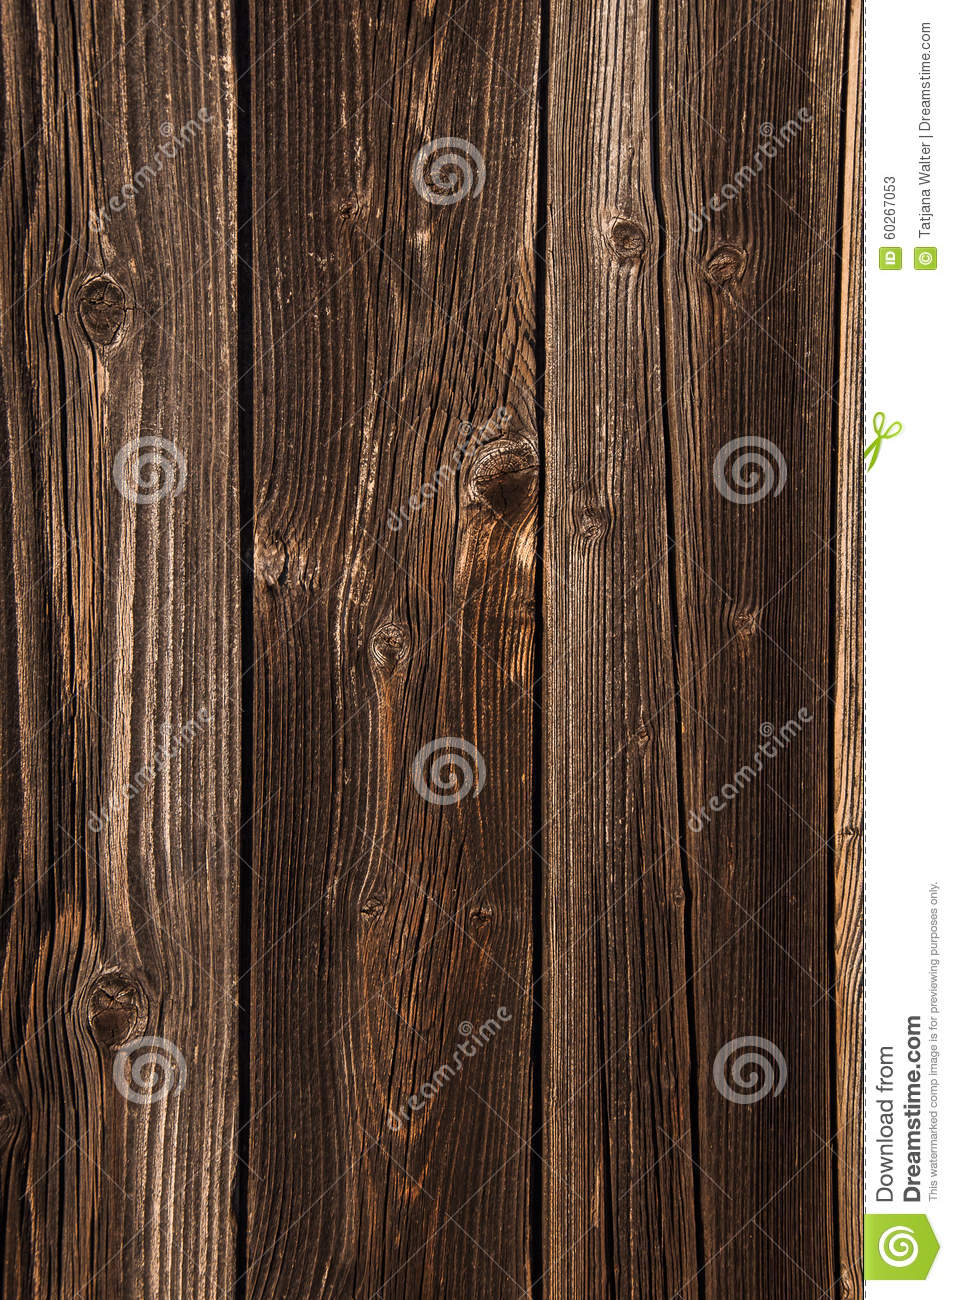 Old barn wood floor background texture stock image for Buy old barn wood